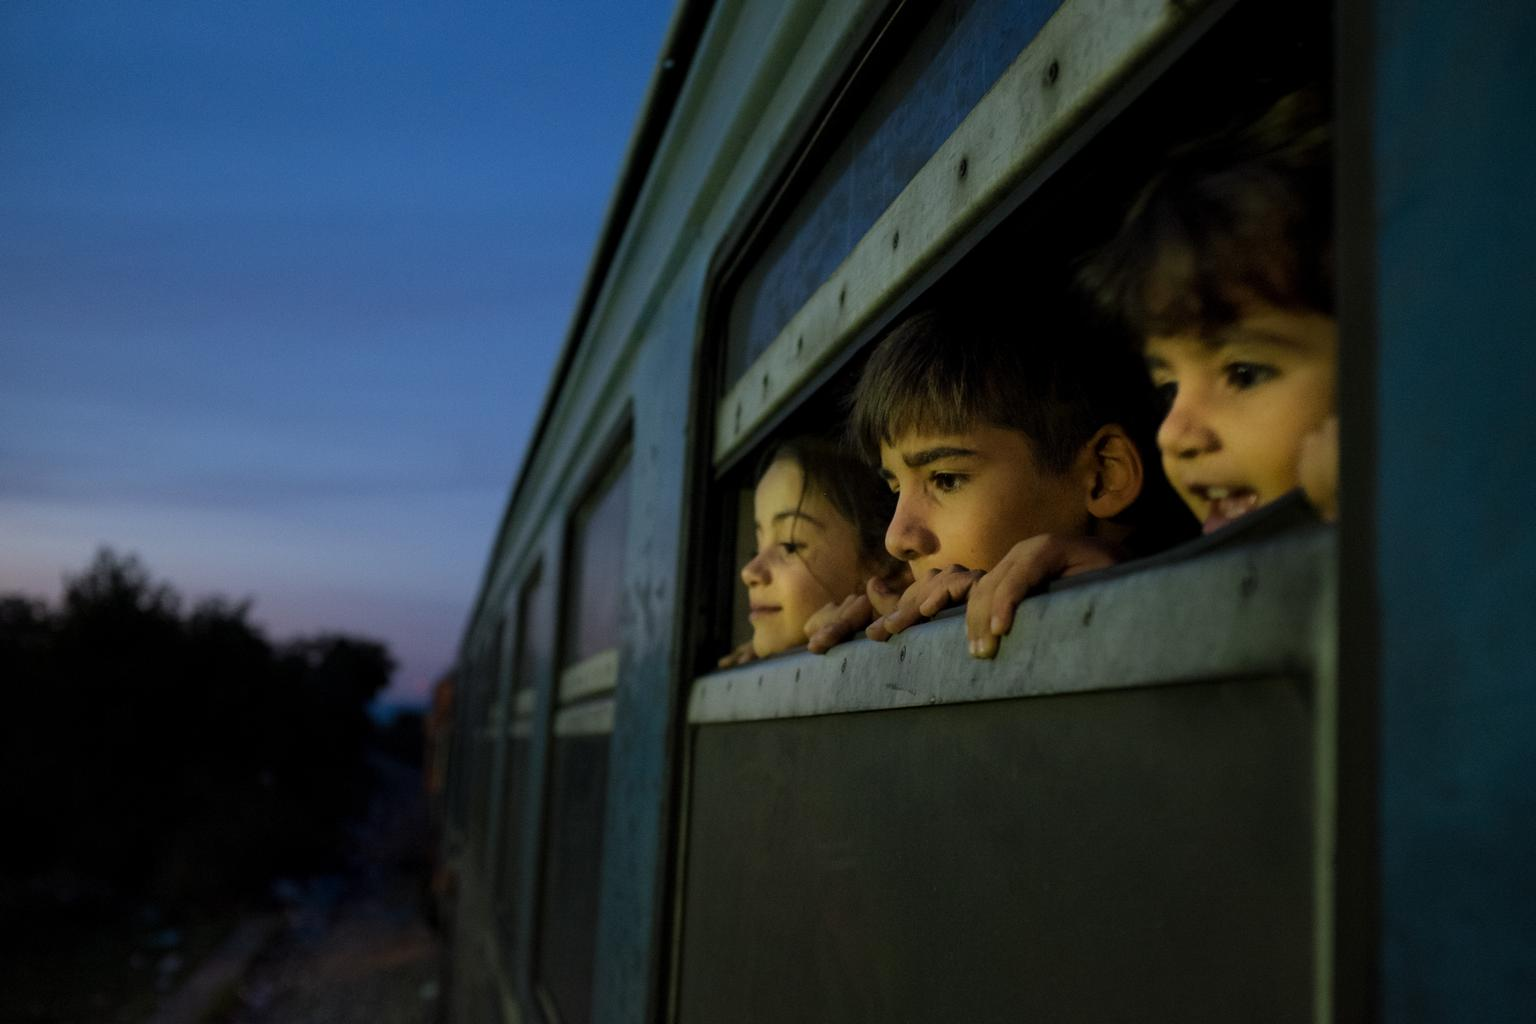 On 2 October 2015 in the former Yugoslav Republic of Macedonia, three children look out of the window of a train as refugees primarily from the Syrian Arab Republic, Afghanistan and Iraq board the train at a reception center for refugees and migrants, in Gevgelija. From here refugees board a special train that takes them Tabanovce close to the border with Serbia.